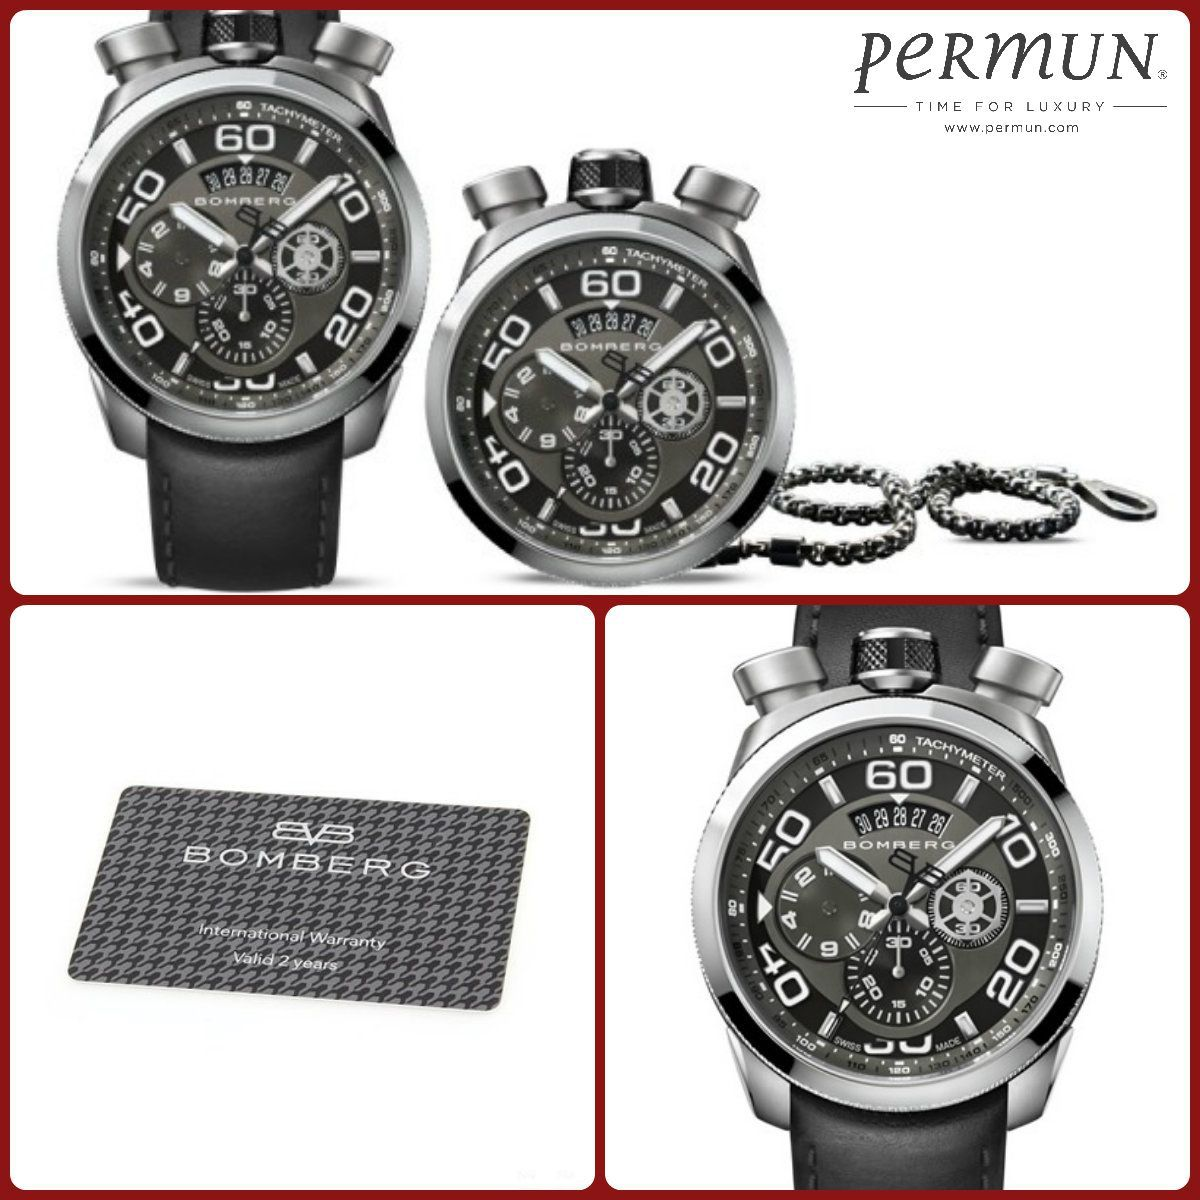 BOMBERG BOLT 68  İster kolunuzda isterseniz cebinizde…  Ürün Kodu: BS45CHSS.008.3  www.permun.com  Tel: 0 (224) 241 31 31  #Bomberg #watches #watchturkey #horology #hediye #fashionable #luxurylife #watchoftheday #watchescollection #saat #bursa #aniyakala #instagramturkey #fashionblogger #tr_turkey #instago #follow #instaphoto #gallery #fashionblog #turkishfollowers #fashionweek #turkinstagram #istanbul